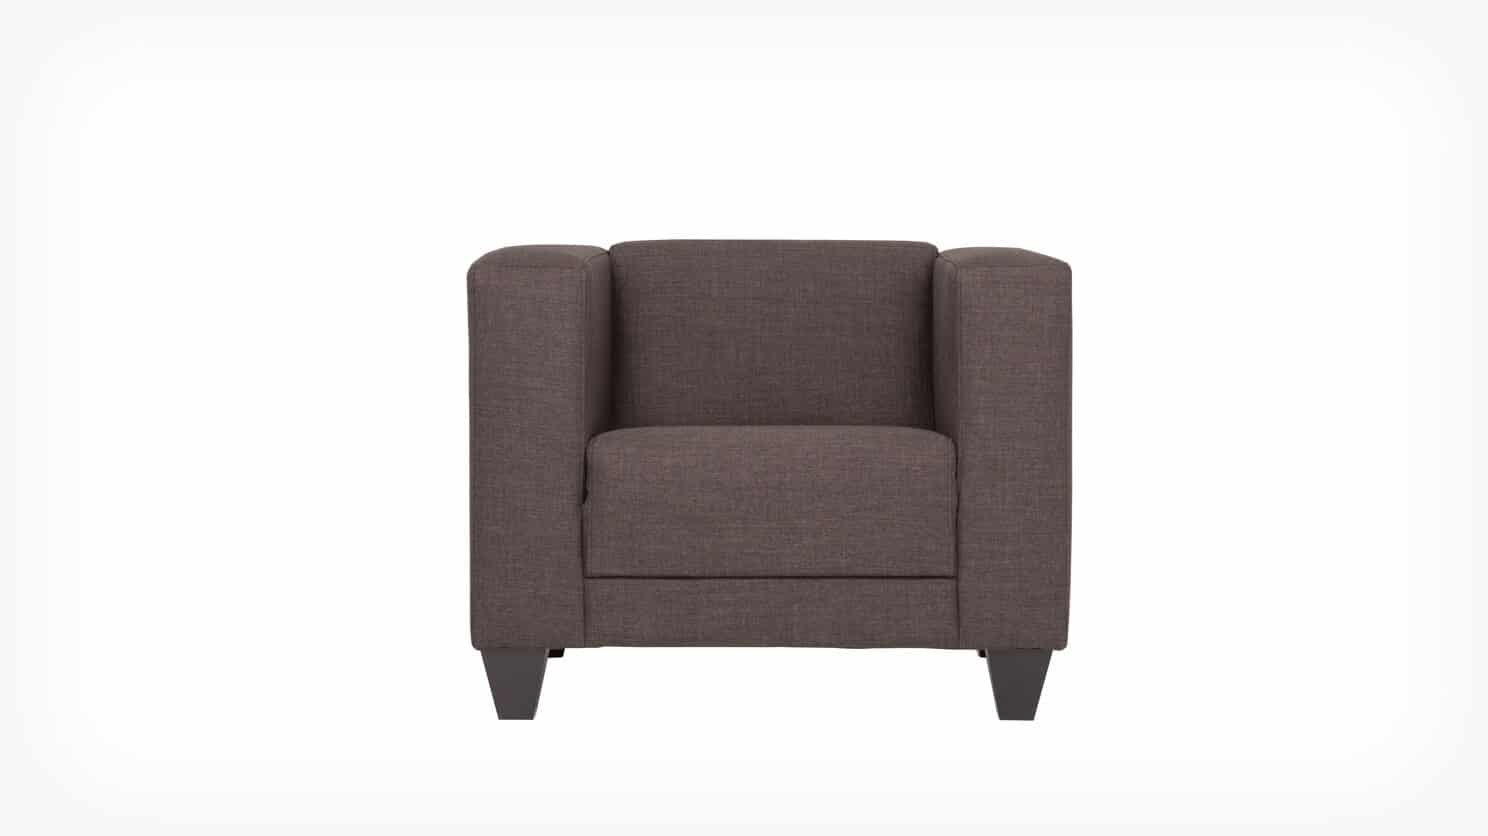 30042 02 1 chairs stella chair polo slate front